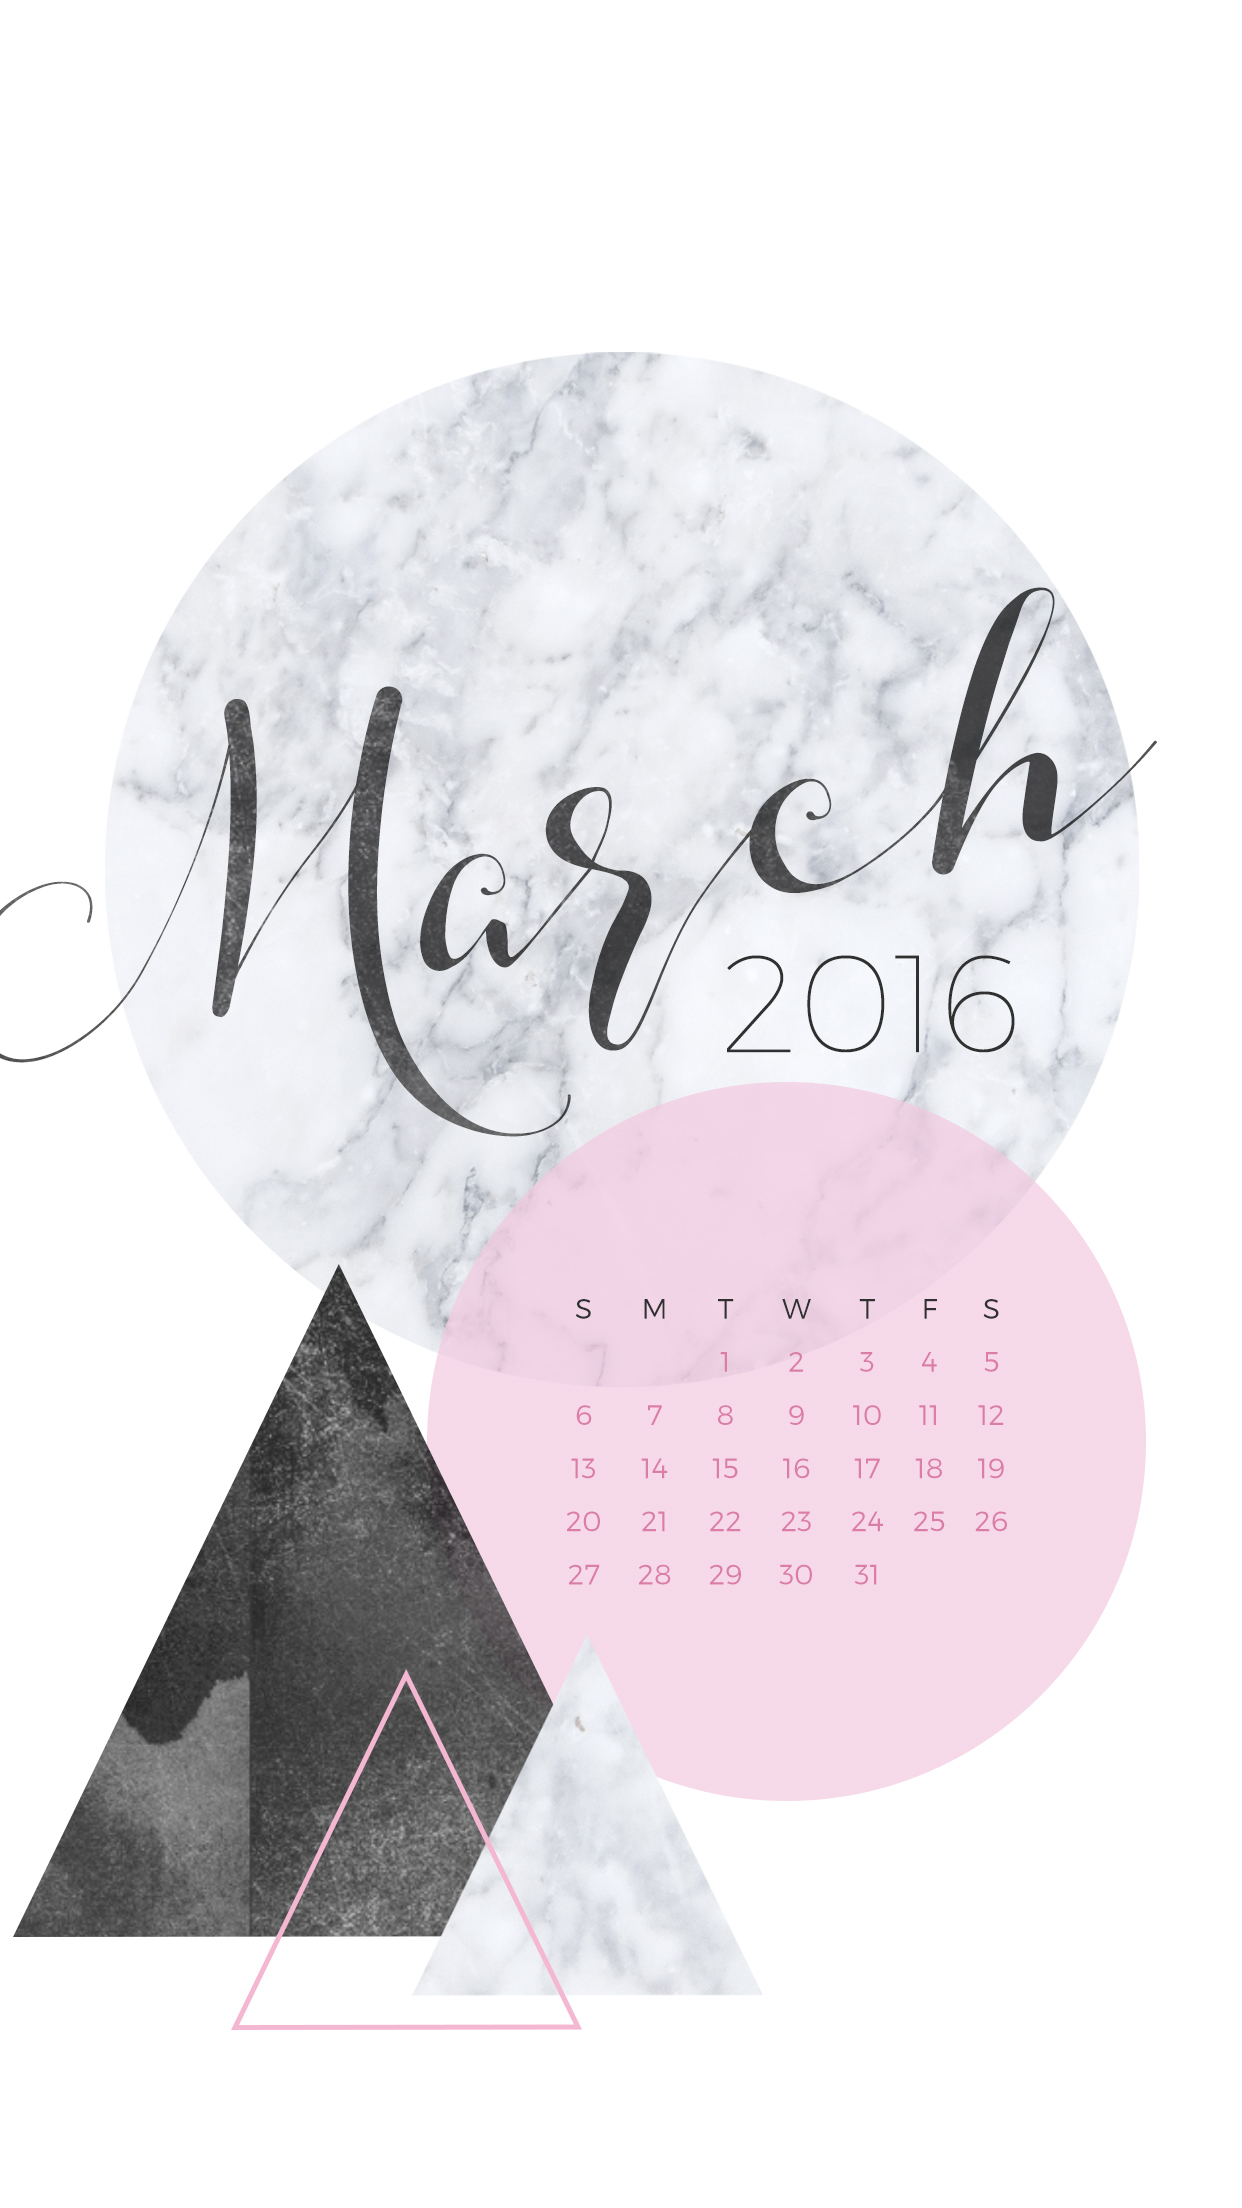 March 2016 Desktop Calendar Wallpaper Paper Leaf 1242x2208